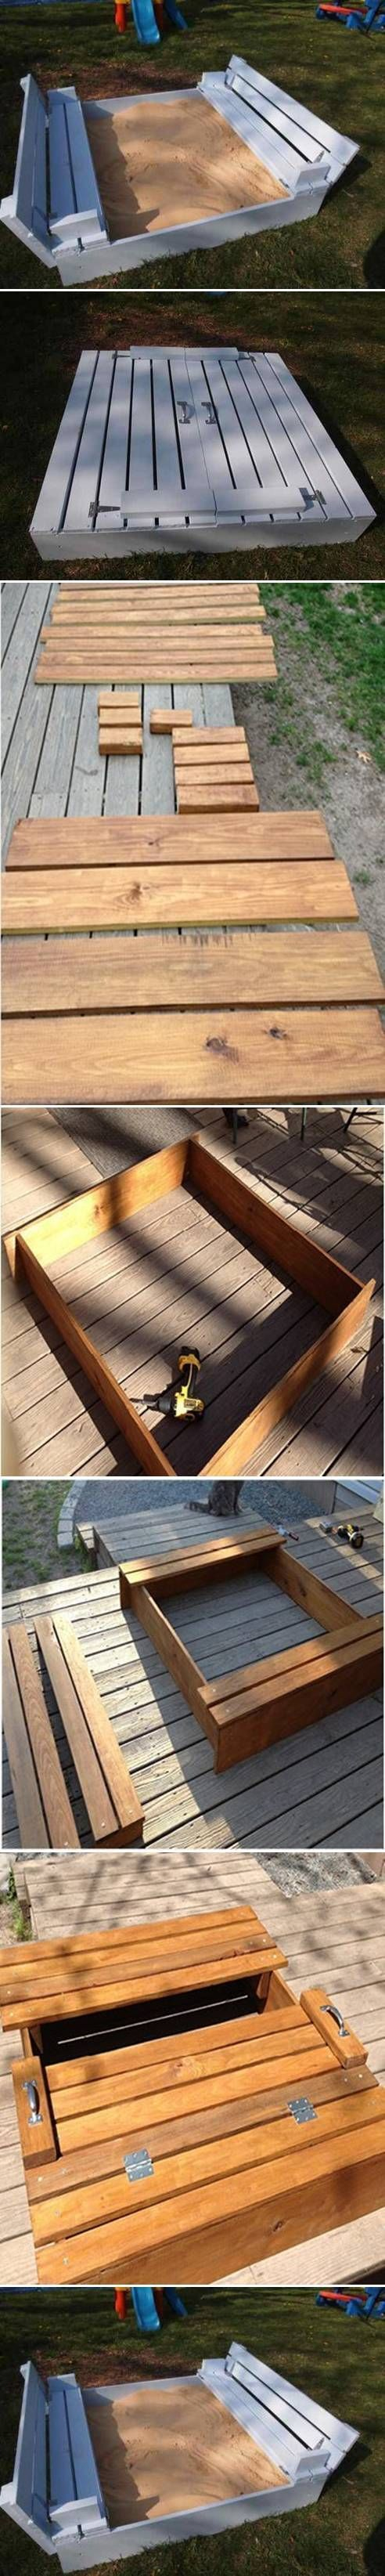 DIY Sandbox for Kids 2